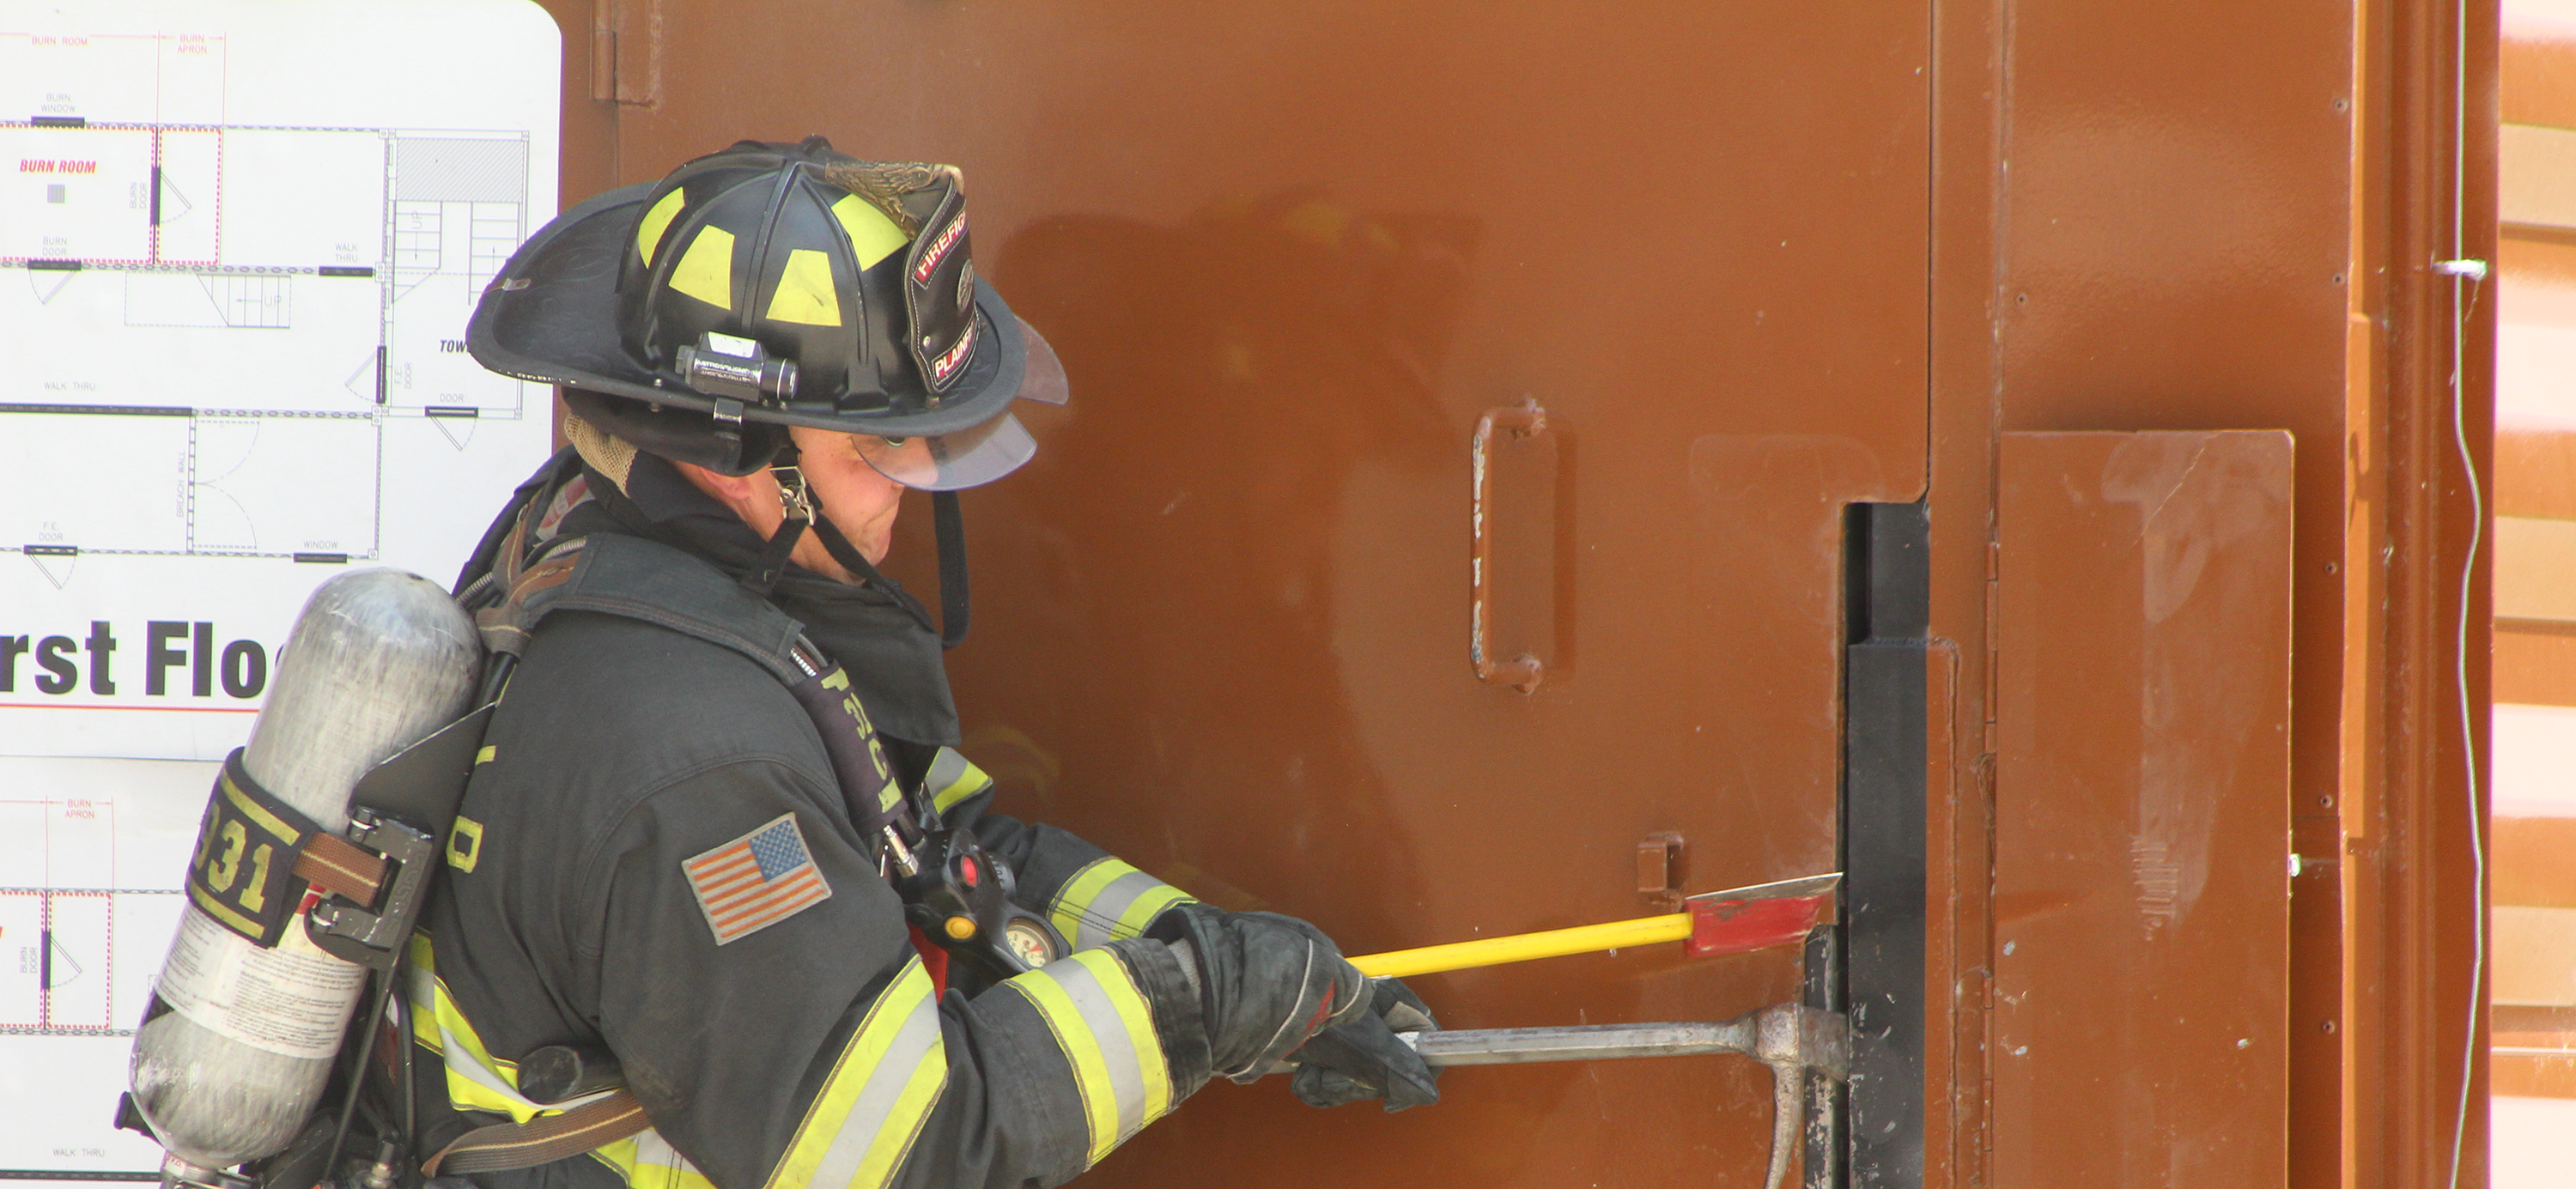 firefighter forcefully opening a door to get inside the building